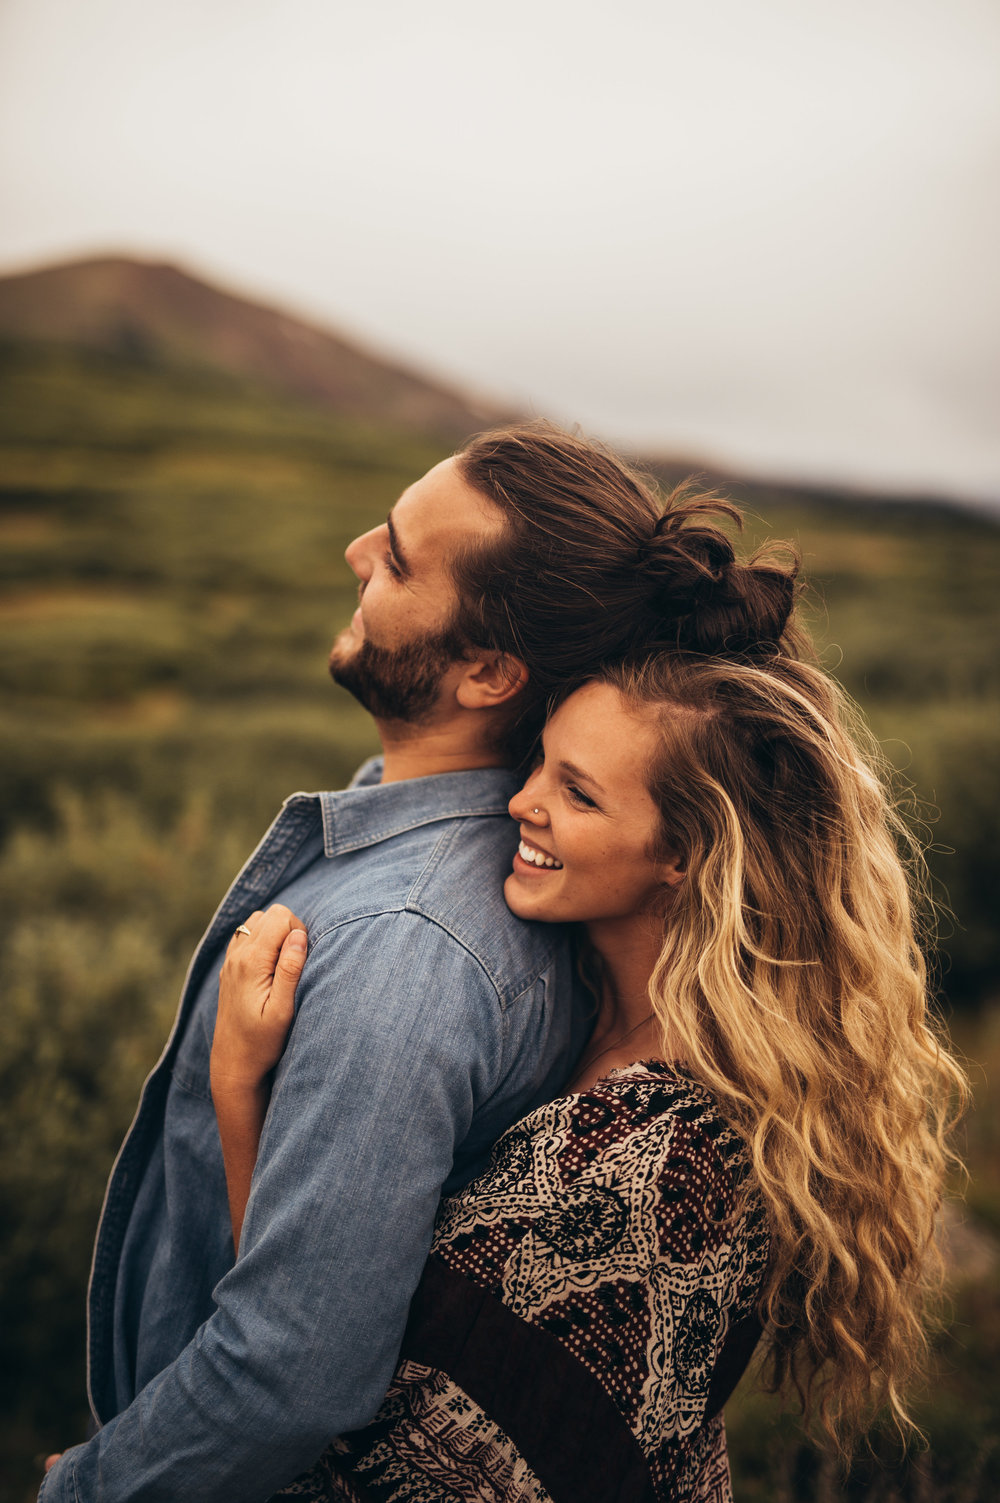 Woman Embracing Man From Behind In the Mountains